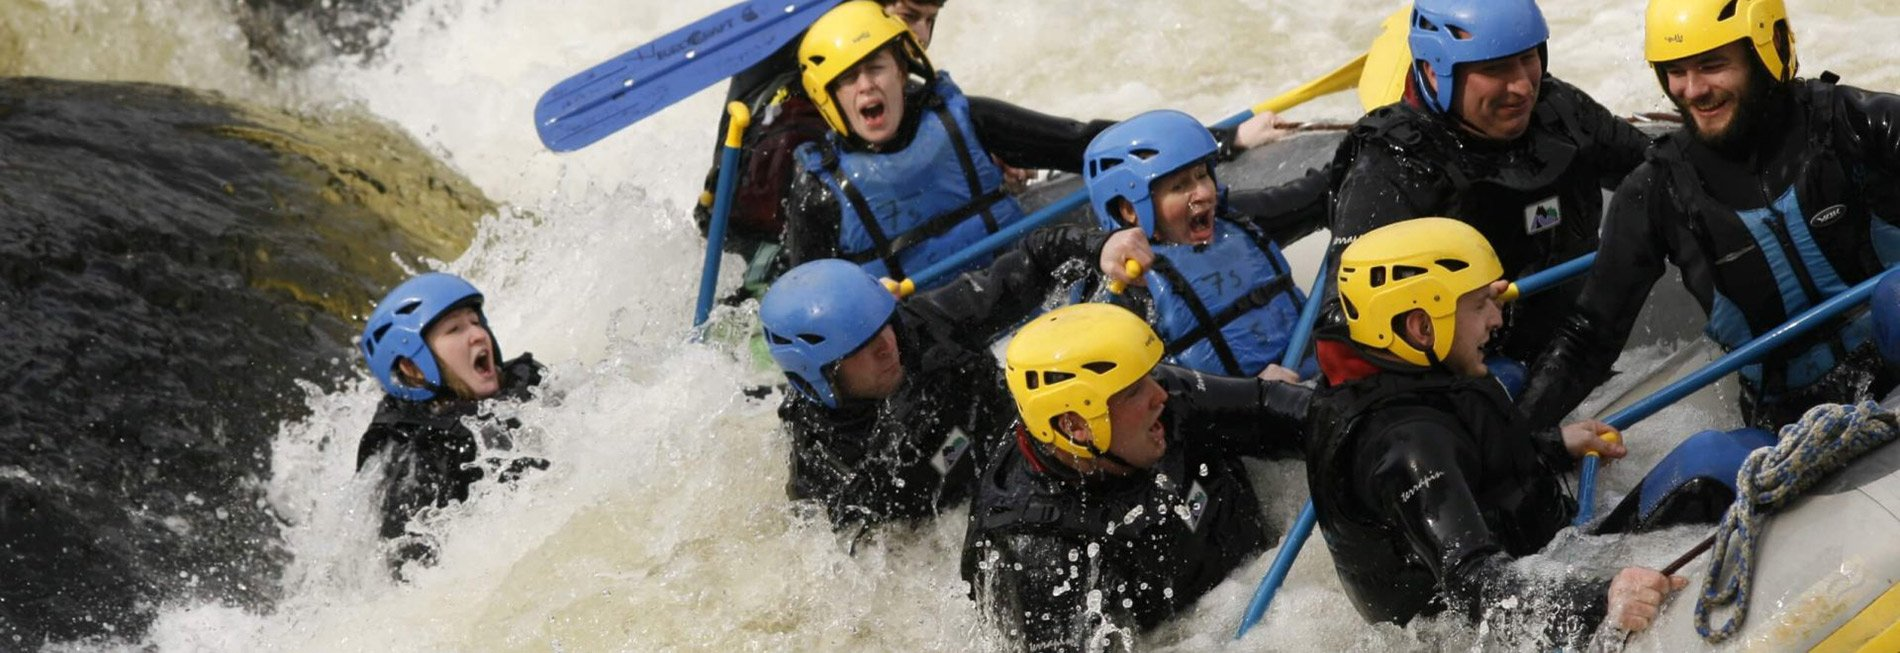 Freespirits Online White Water Rafting Scotland